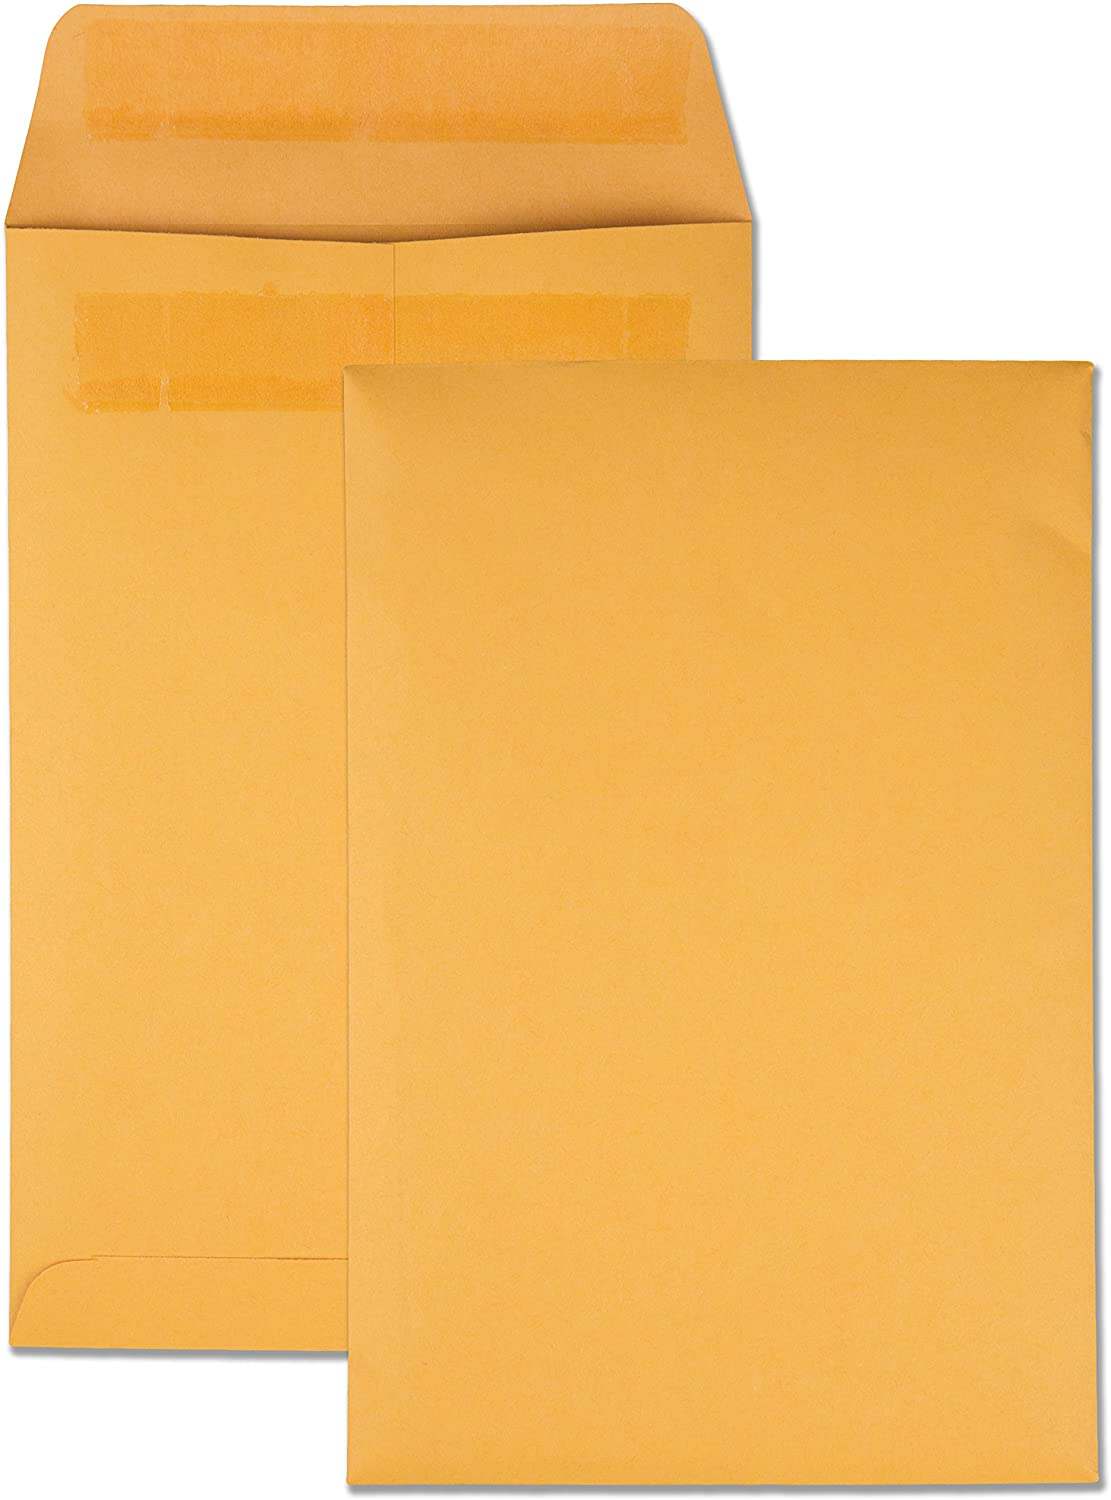 Quality Park Large Format/Catalog Envelopes, Redi-Seal, 6.5 x 9.5, Box of 250 (QUA43362) : Office Products